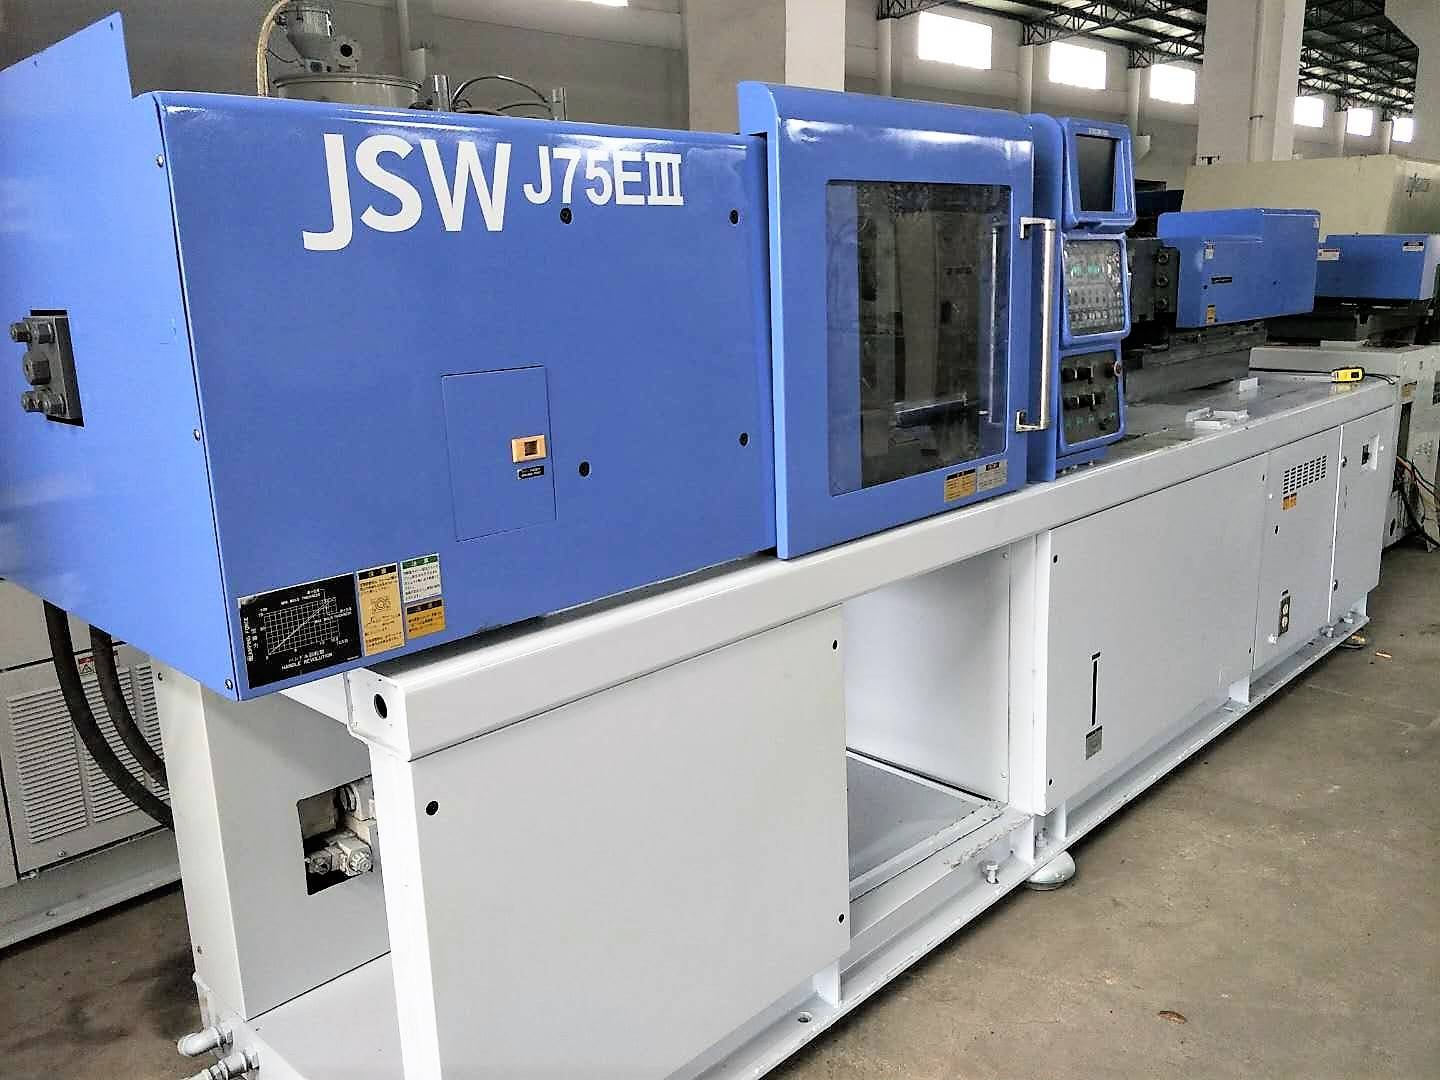 JSW75t (J75EIII) used Plastic Injection Molding Machine Featured Image